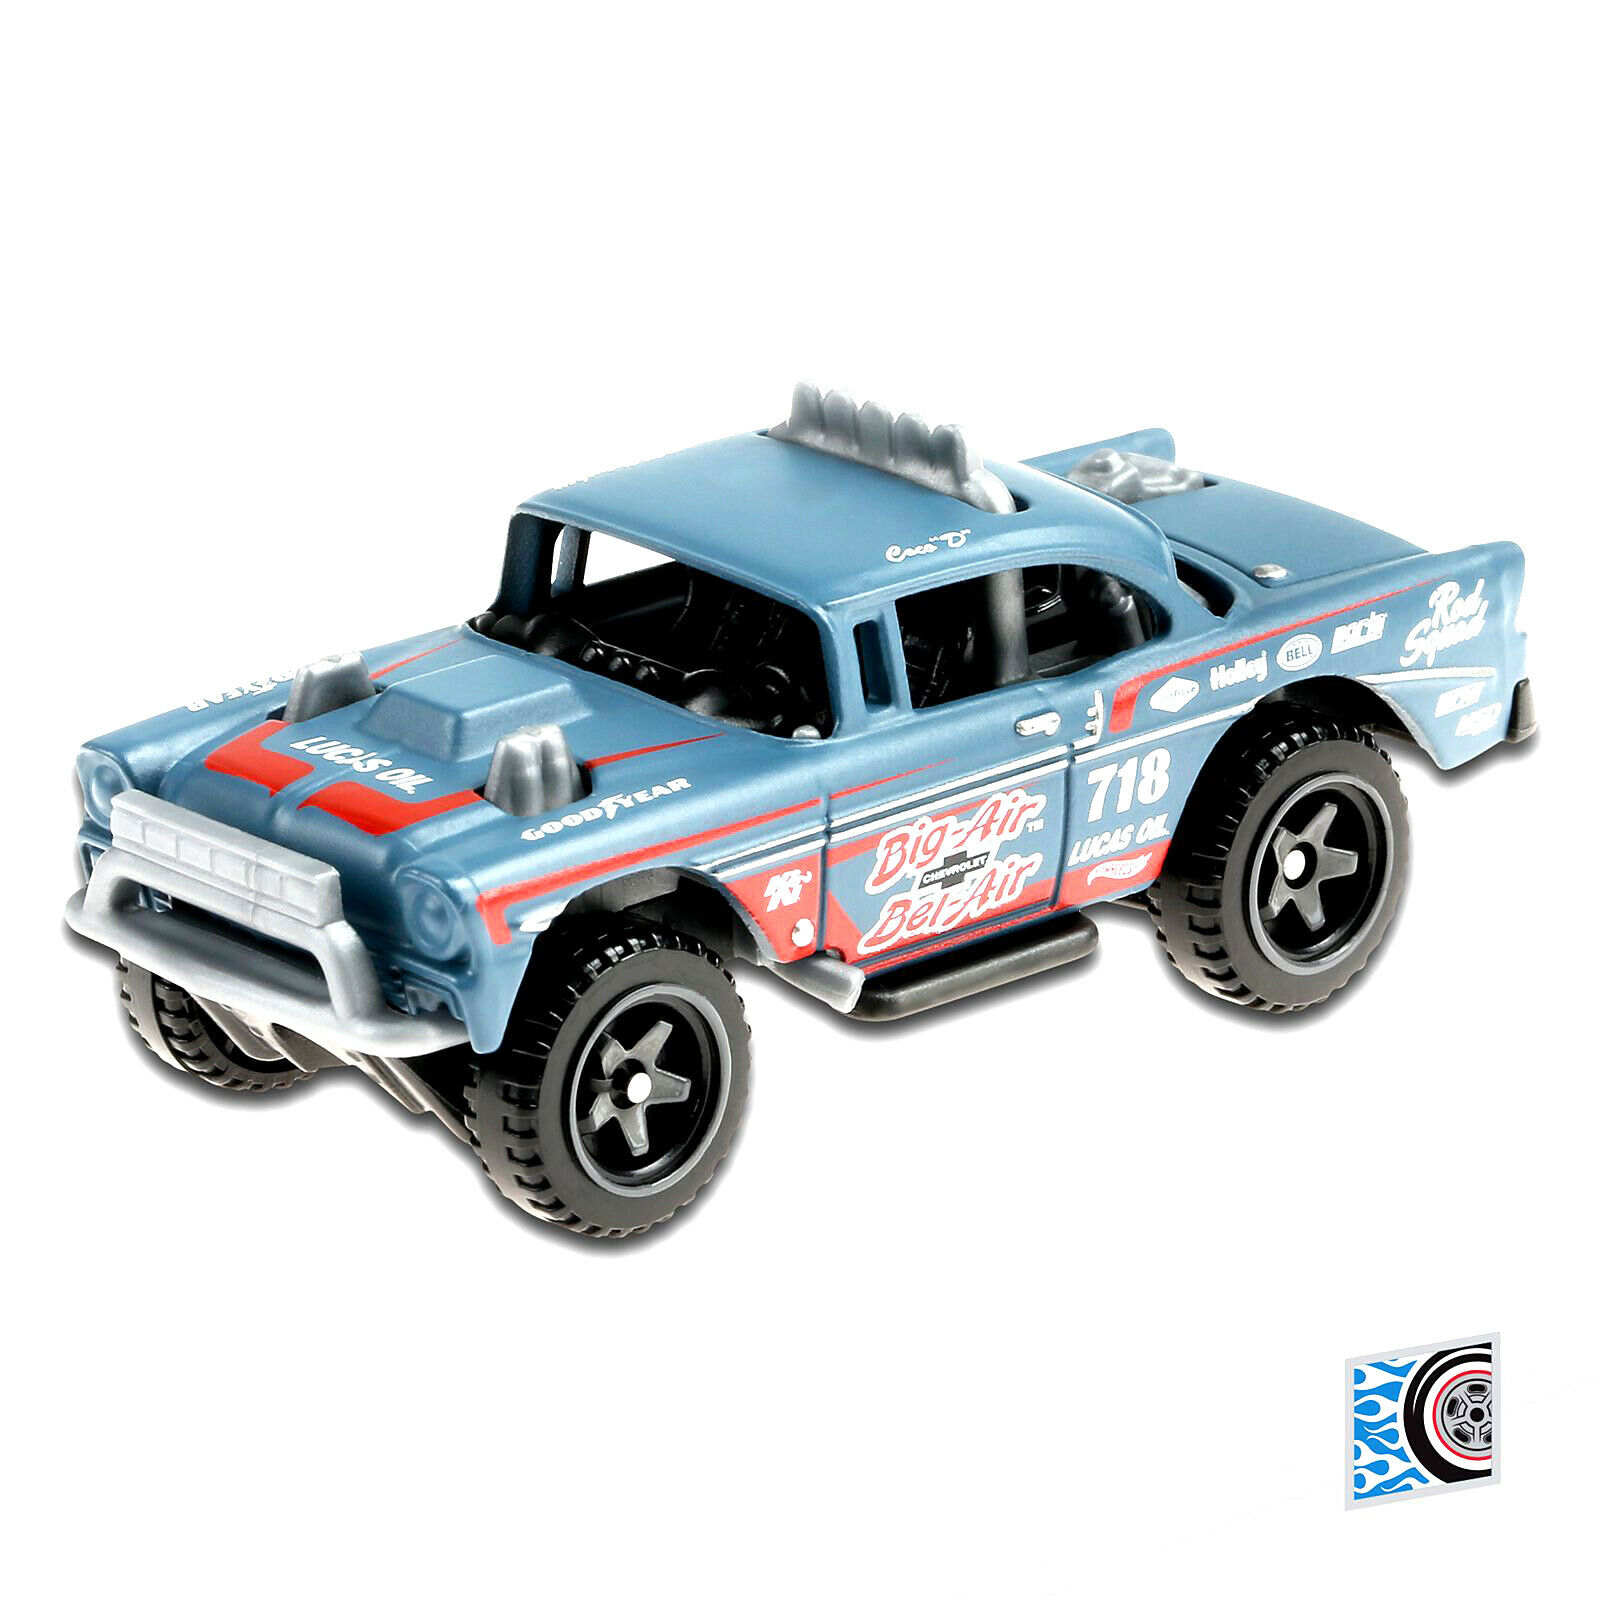 Hot Wheels Big Air Bel Air 1 64 Kids Model Diecast Toy Cars Ghb48 D521 G1 New Ebay